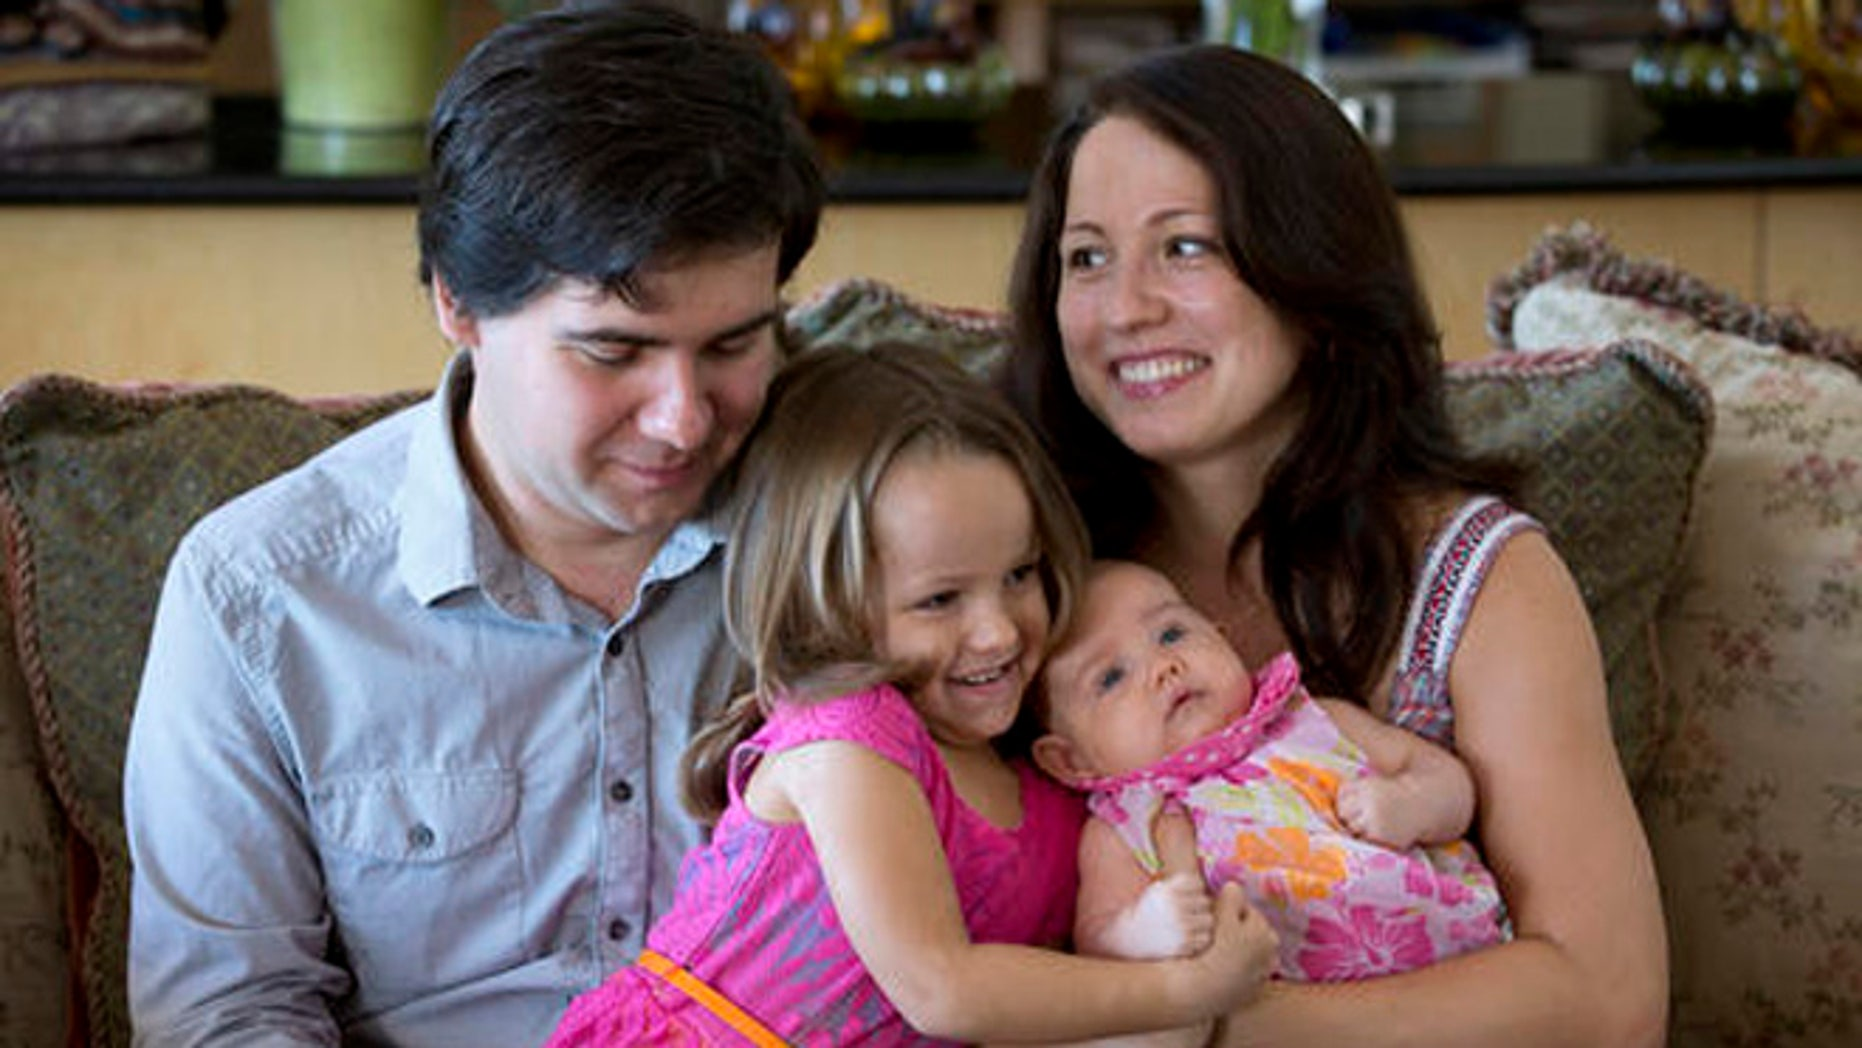 In this 2014 file photo, award-winning concert pianist Vadym Kholodenko, poses with his wife Sofya Tsygankova and daughters Nika, 4, and Michela, at their home in Fort Worth, Texas.